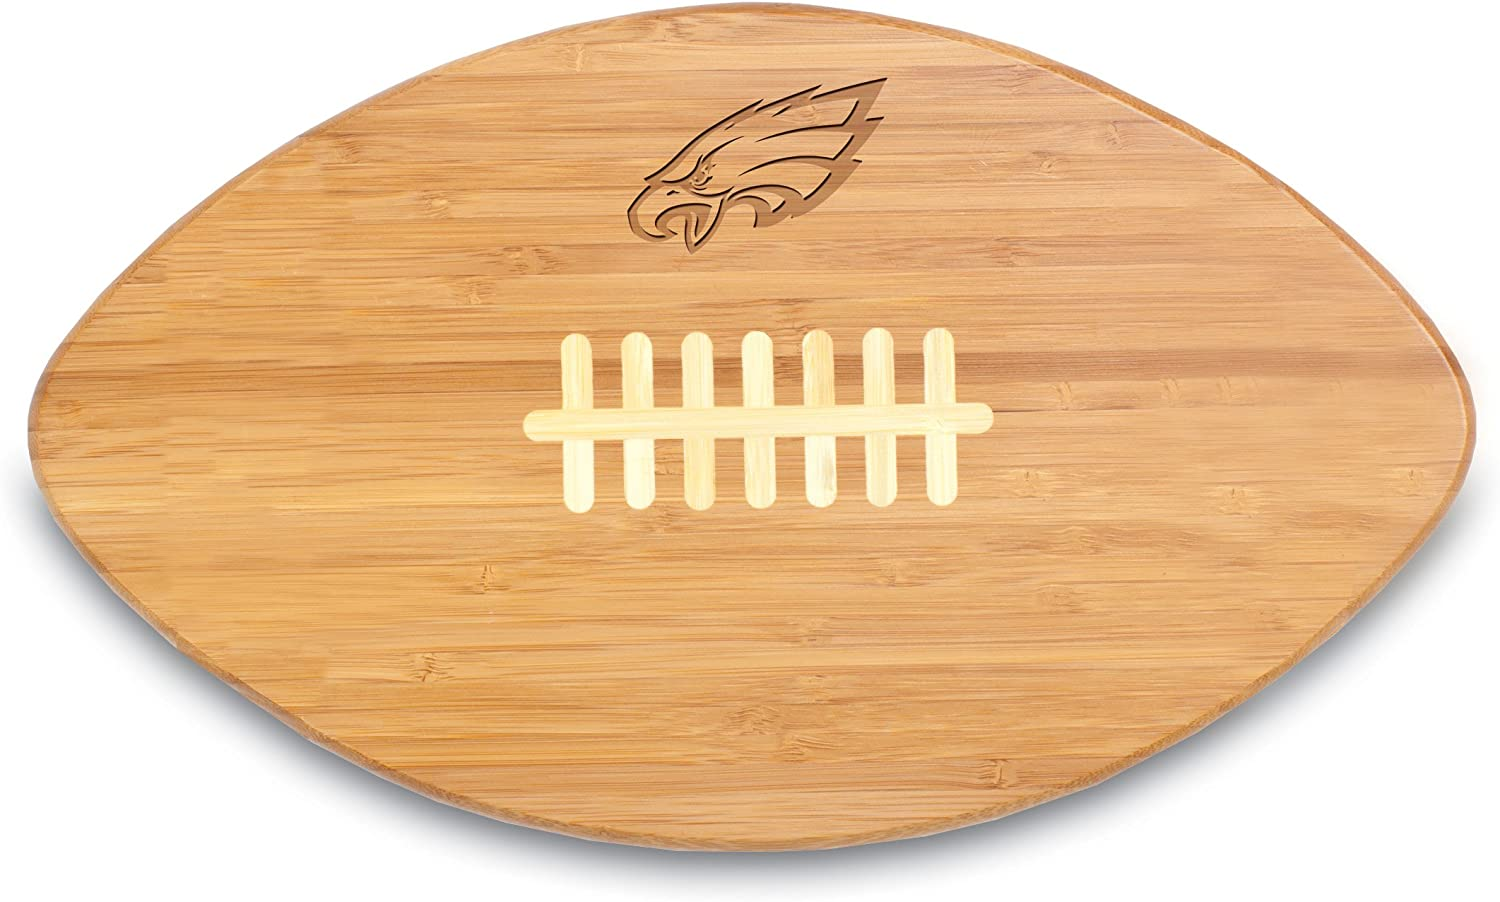 NFL Max 42% OFF Philadelphia Popular products Eagles Touchdown Pro 16- Cutting Board Bamboo